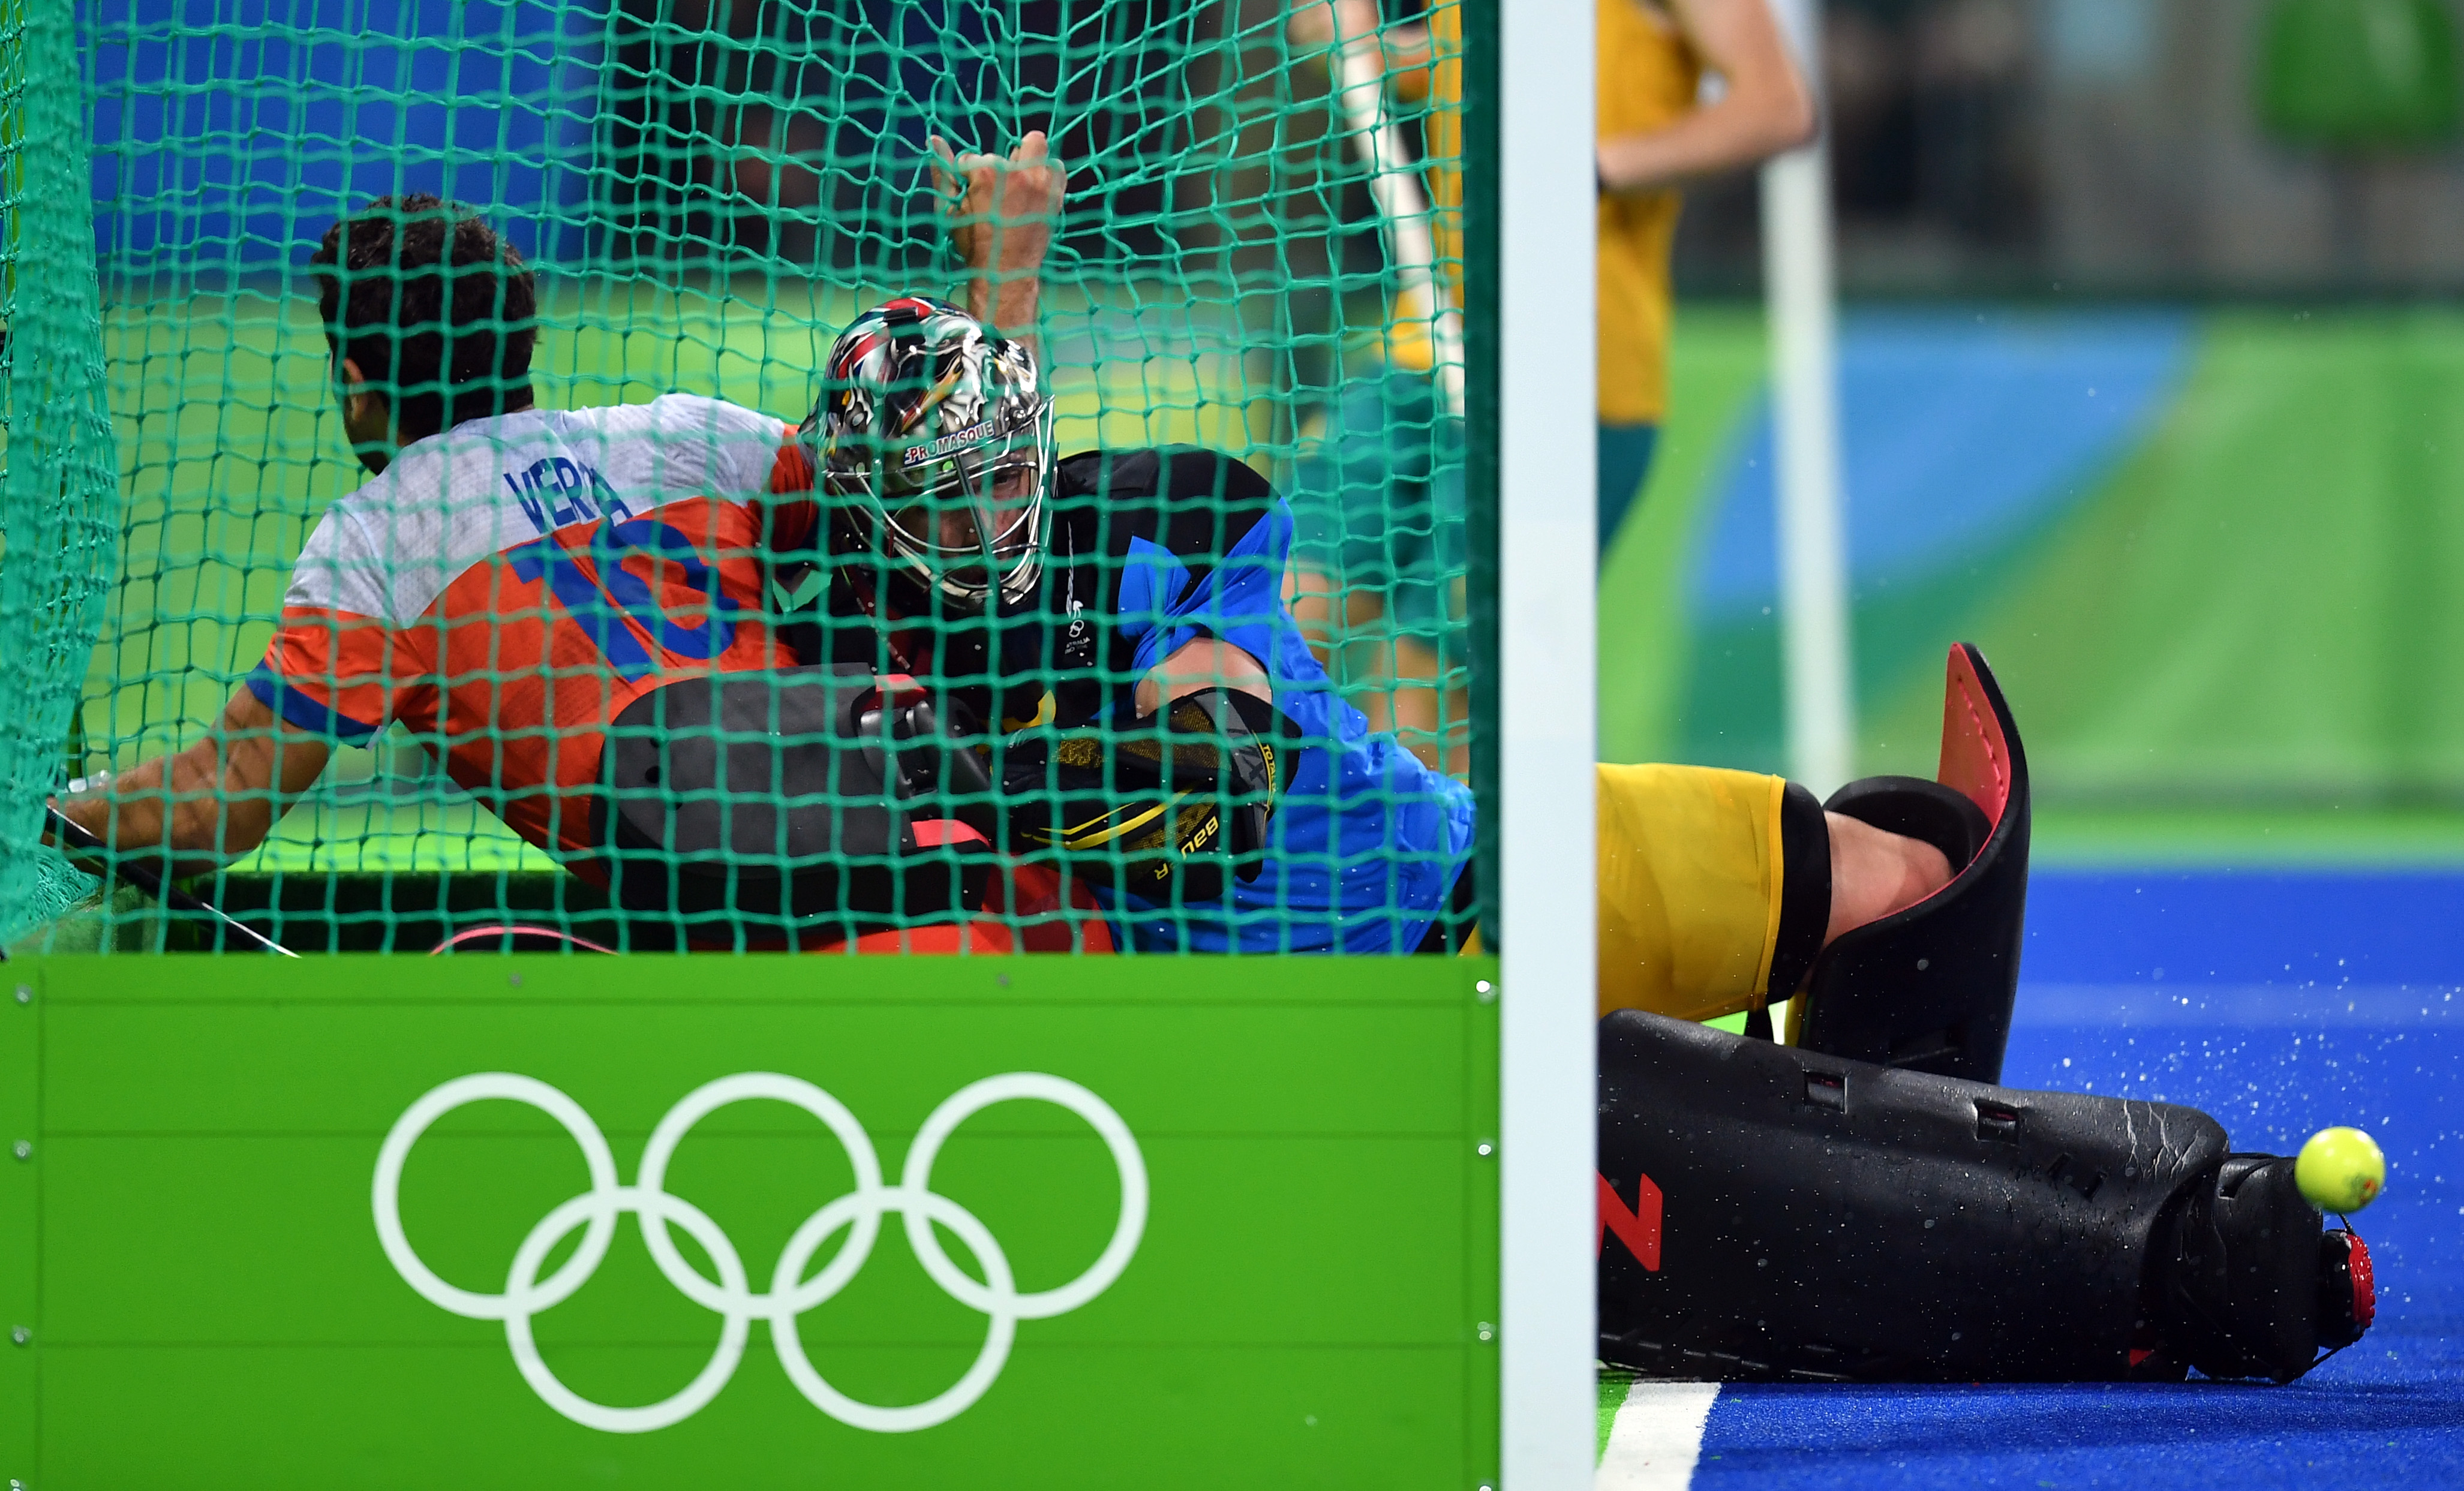 Netherlands' Valentin Verga (L) vies with Australia's Andrew Charter to score a goal during the men's quarterfinal field hockey Netherlands vs Australia match of the Rio 2016 Olympics Games at the Olympic Hockey Centre in Rio de Janeiro on August 14, 2016. / AFP / MANAN VATSYAYANA (Photo credit should read MANAN VATSYAYANA/AFP/Getty Images)